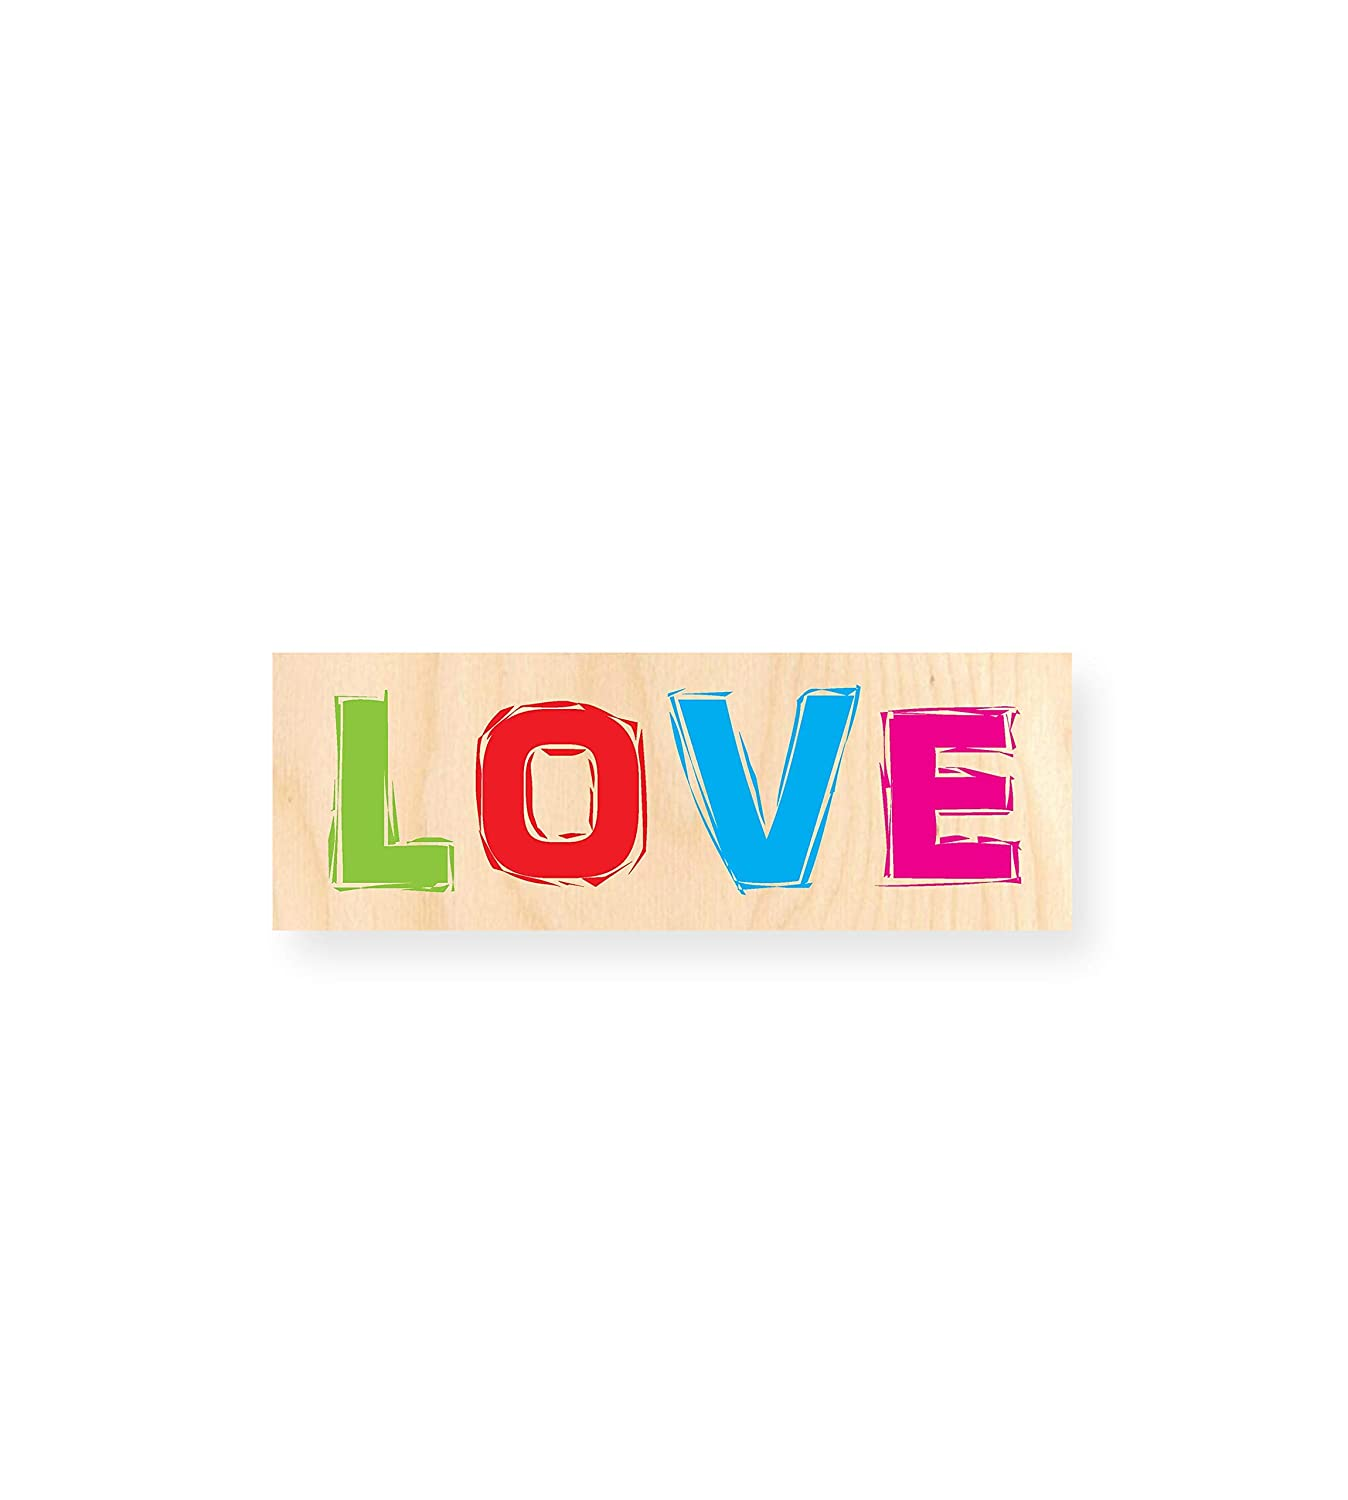 LOVE | Tabla de Madera impresa - Autoadhesiva: Amazon.es ...